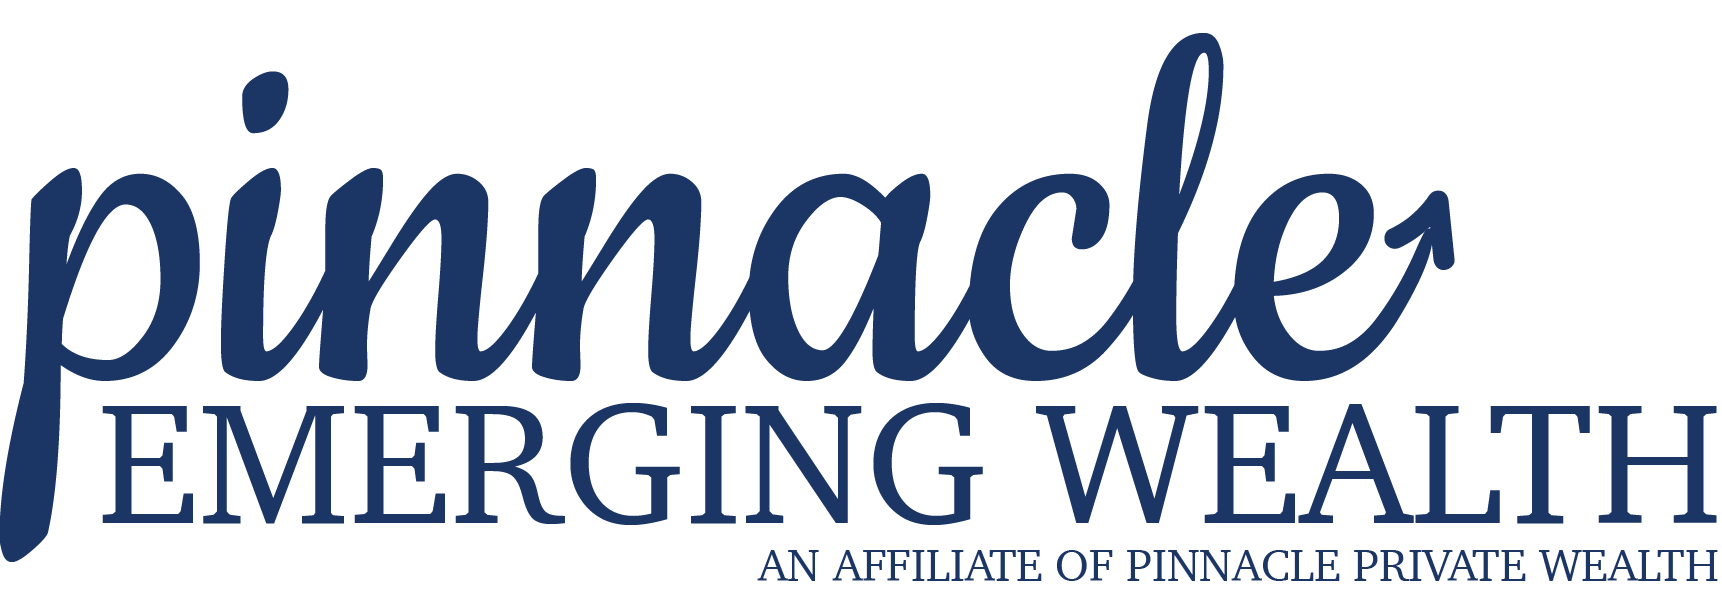 Logo for Pinnacle Emerging Wealth